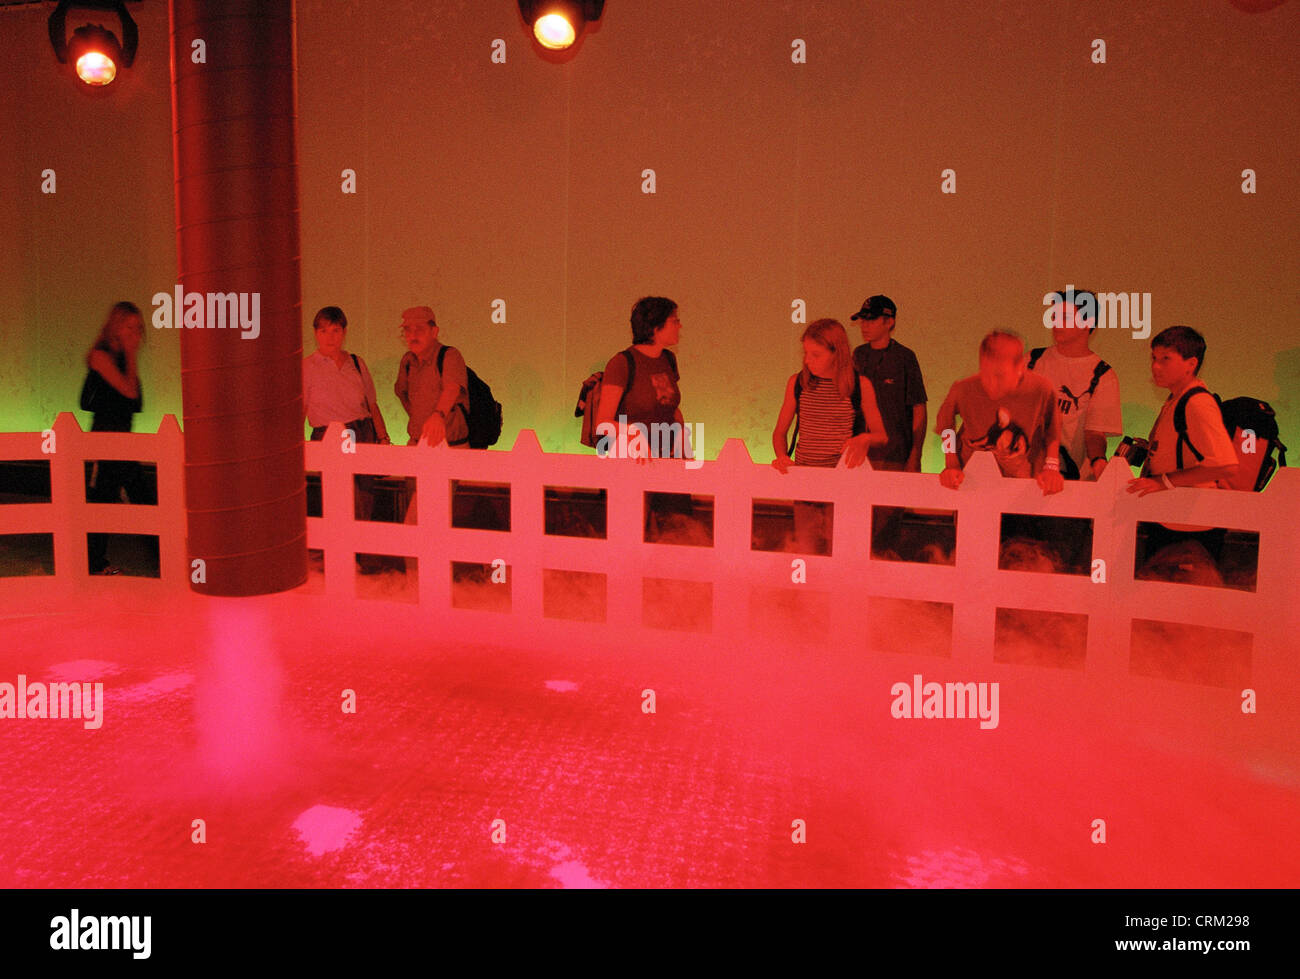 A school class is considered an art installation - Stock Image